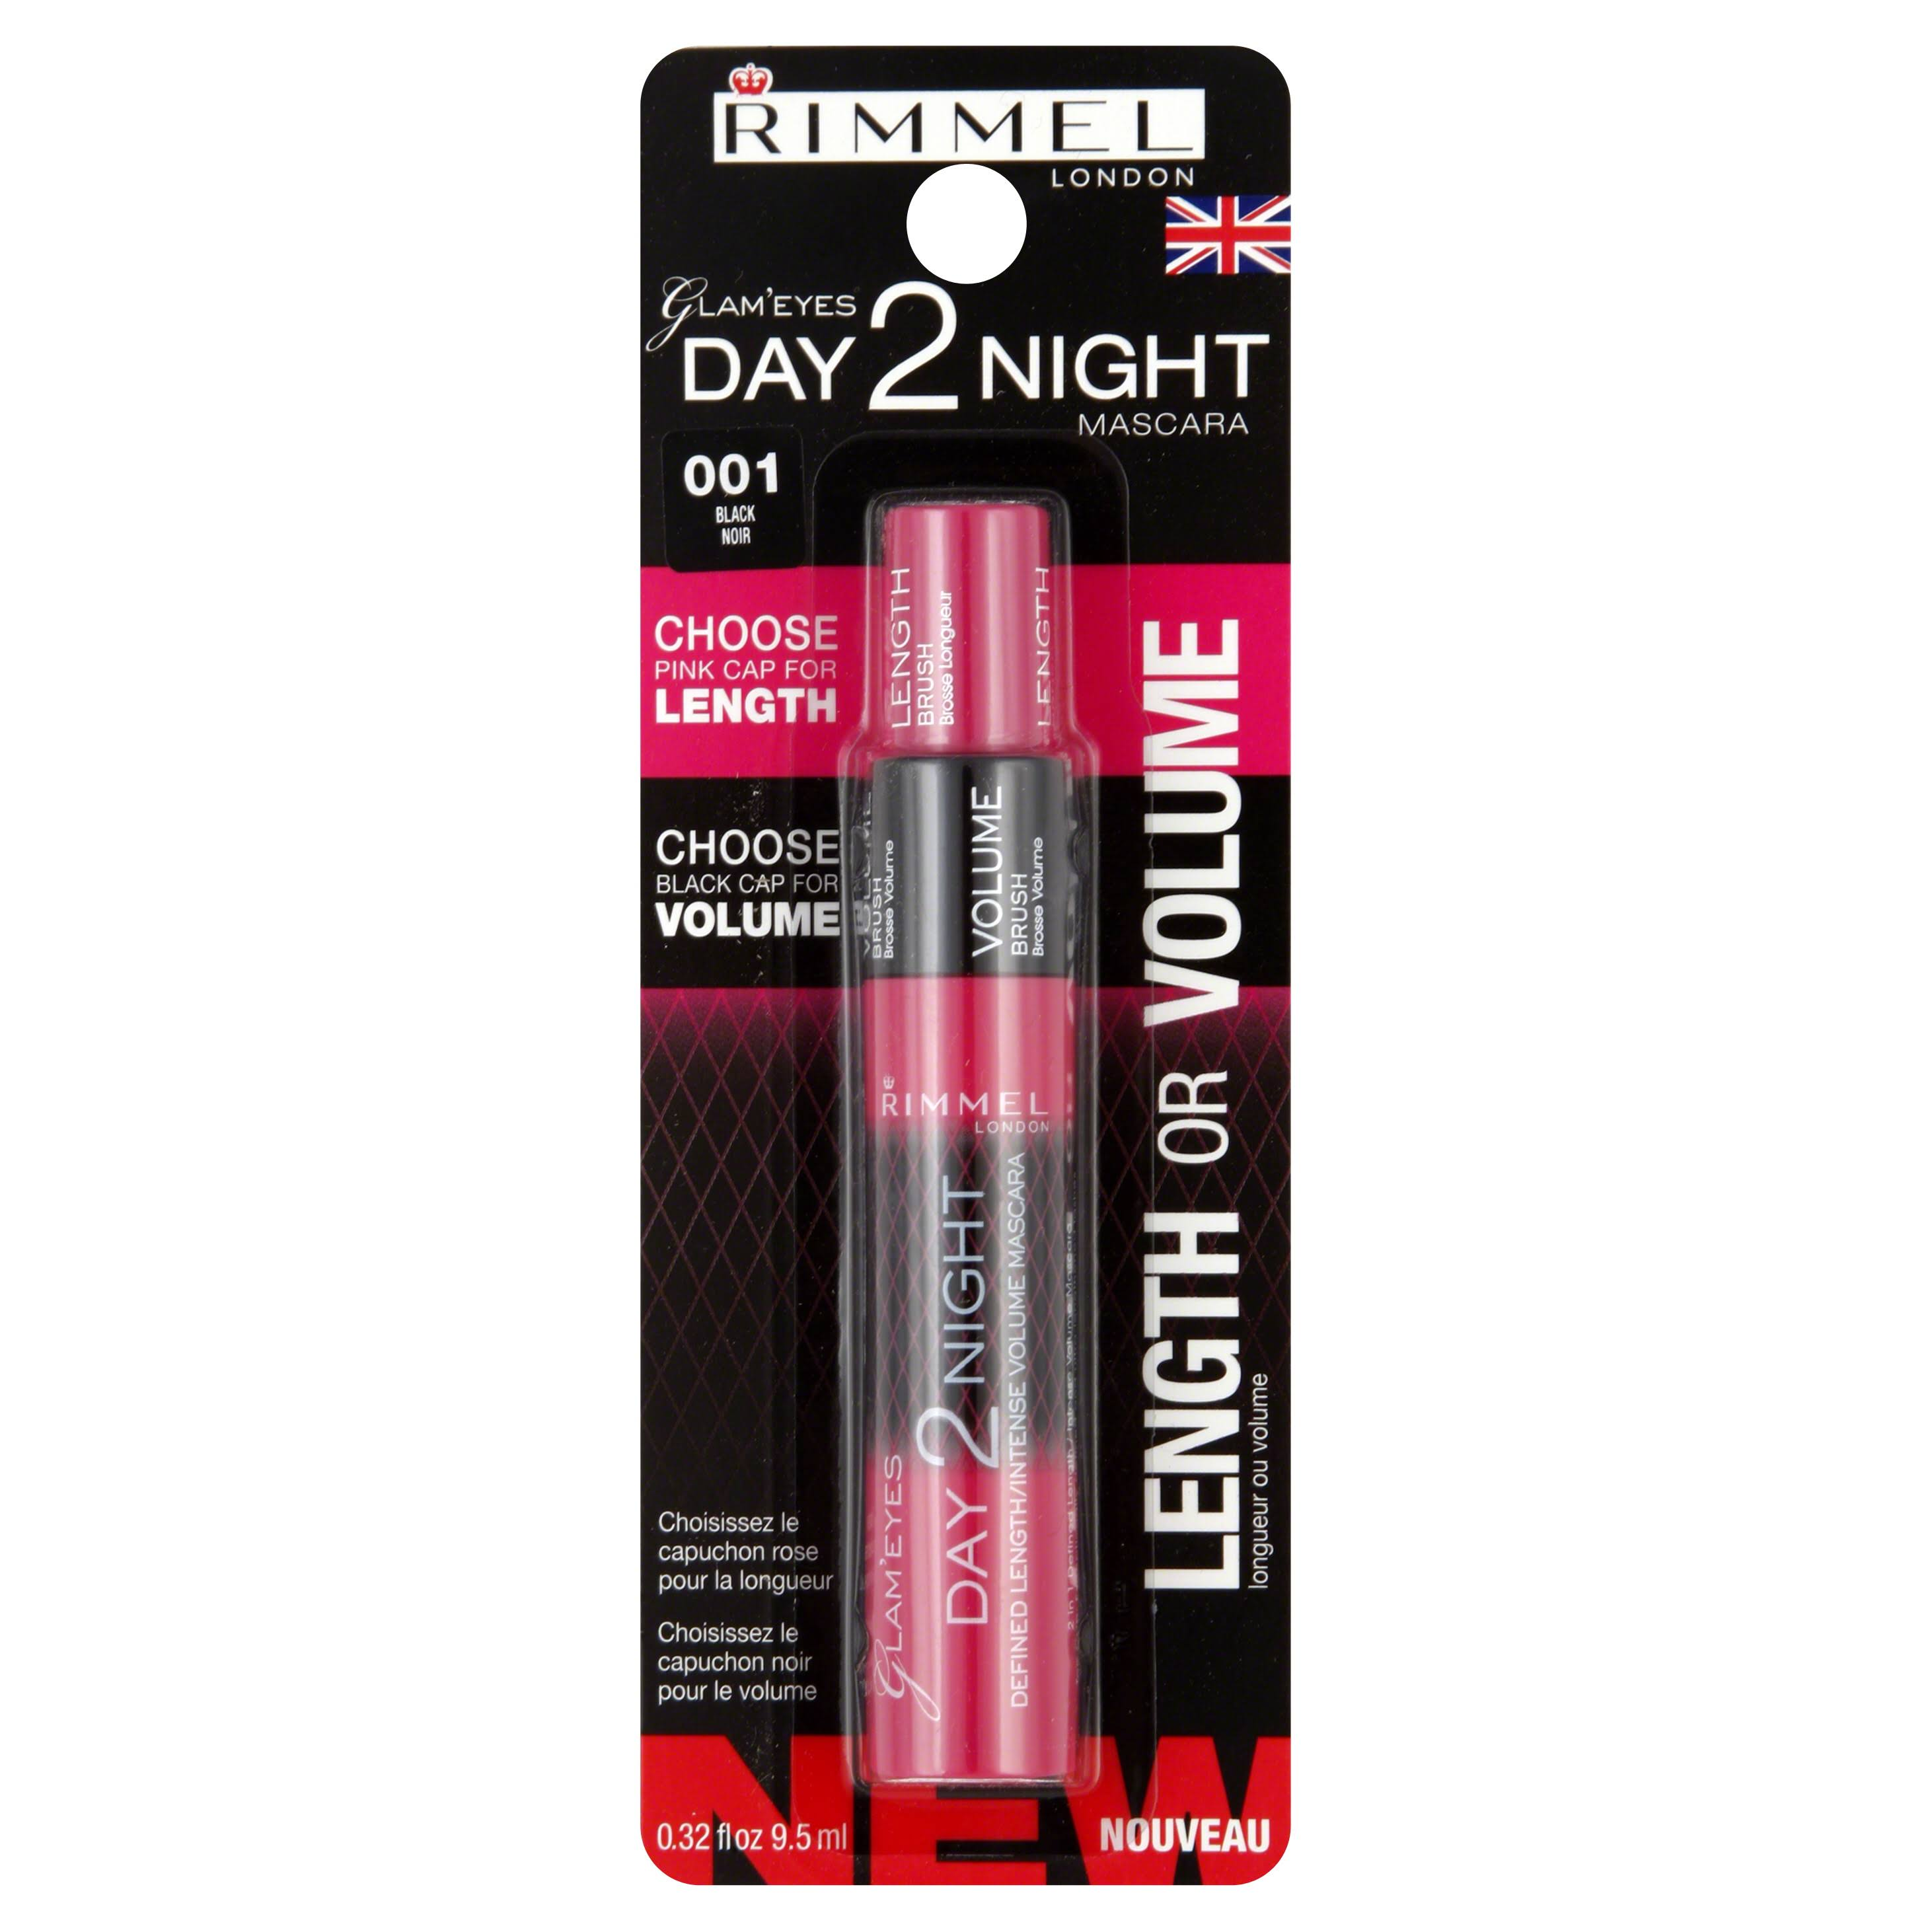 Rimmel Glam Eyes Day 2 Night Mascara - 001 Black, 9.5ml